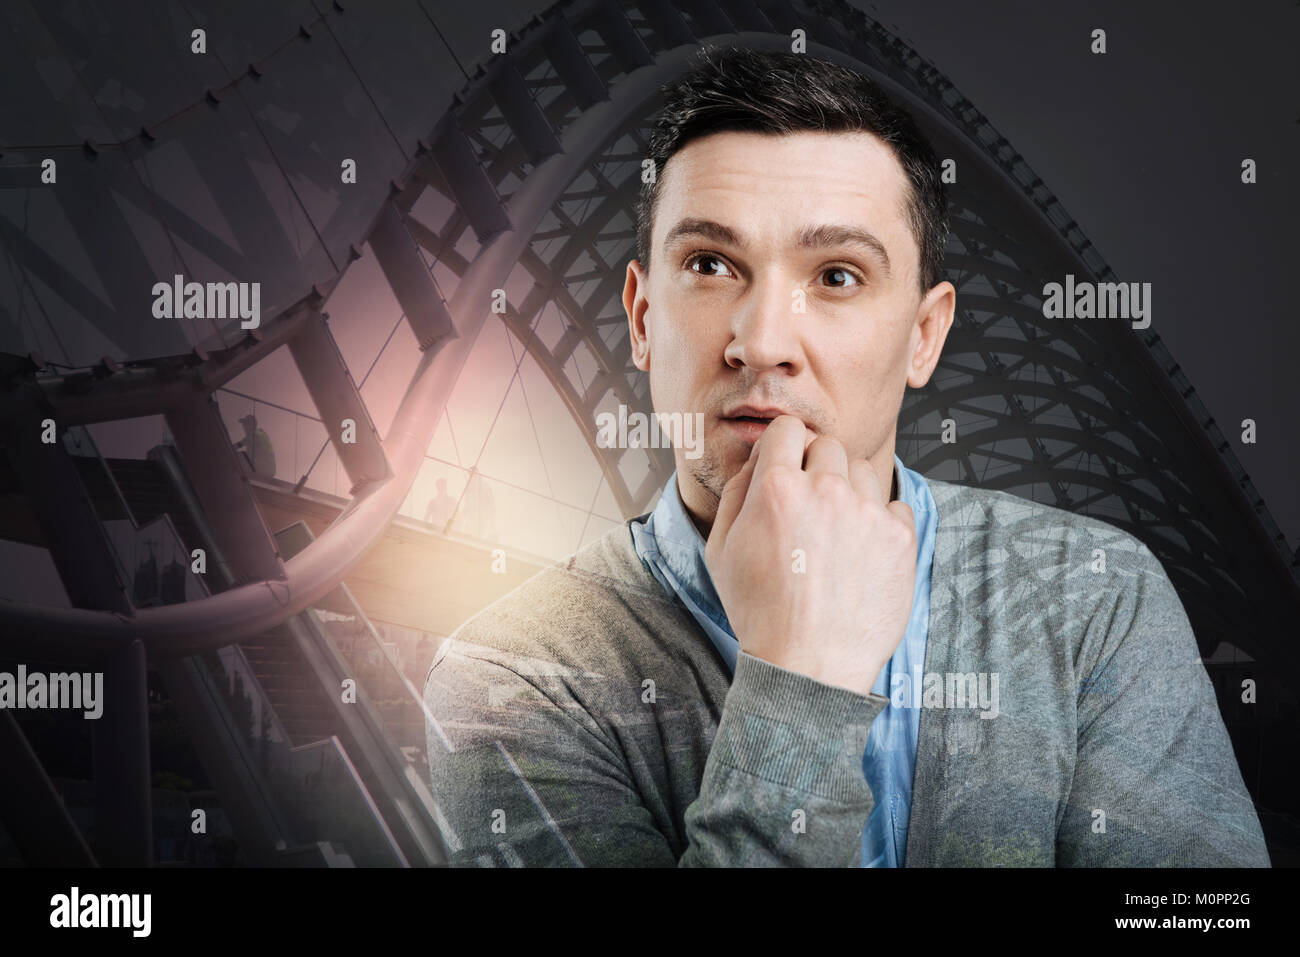 Concentrated millennial guy generating ideas - Stock Image